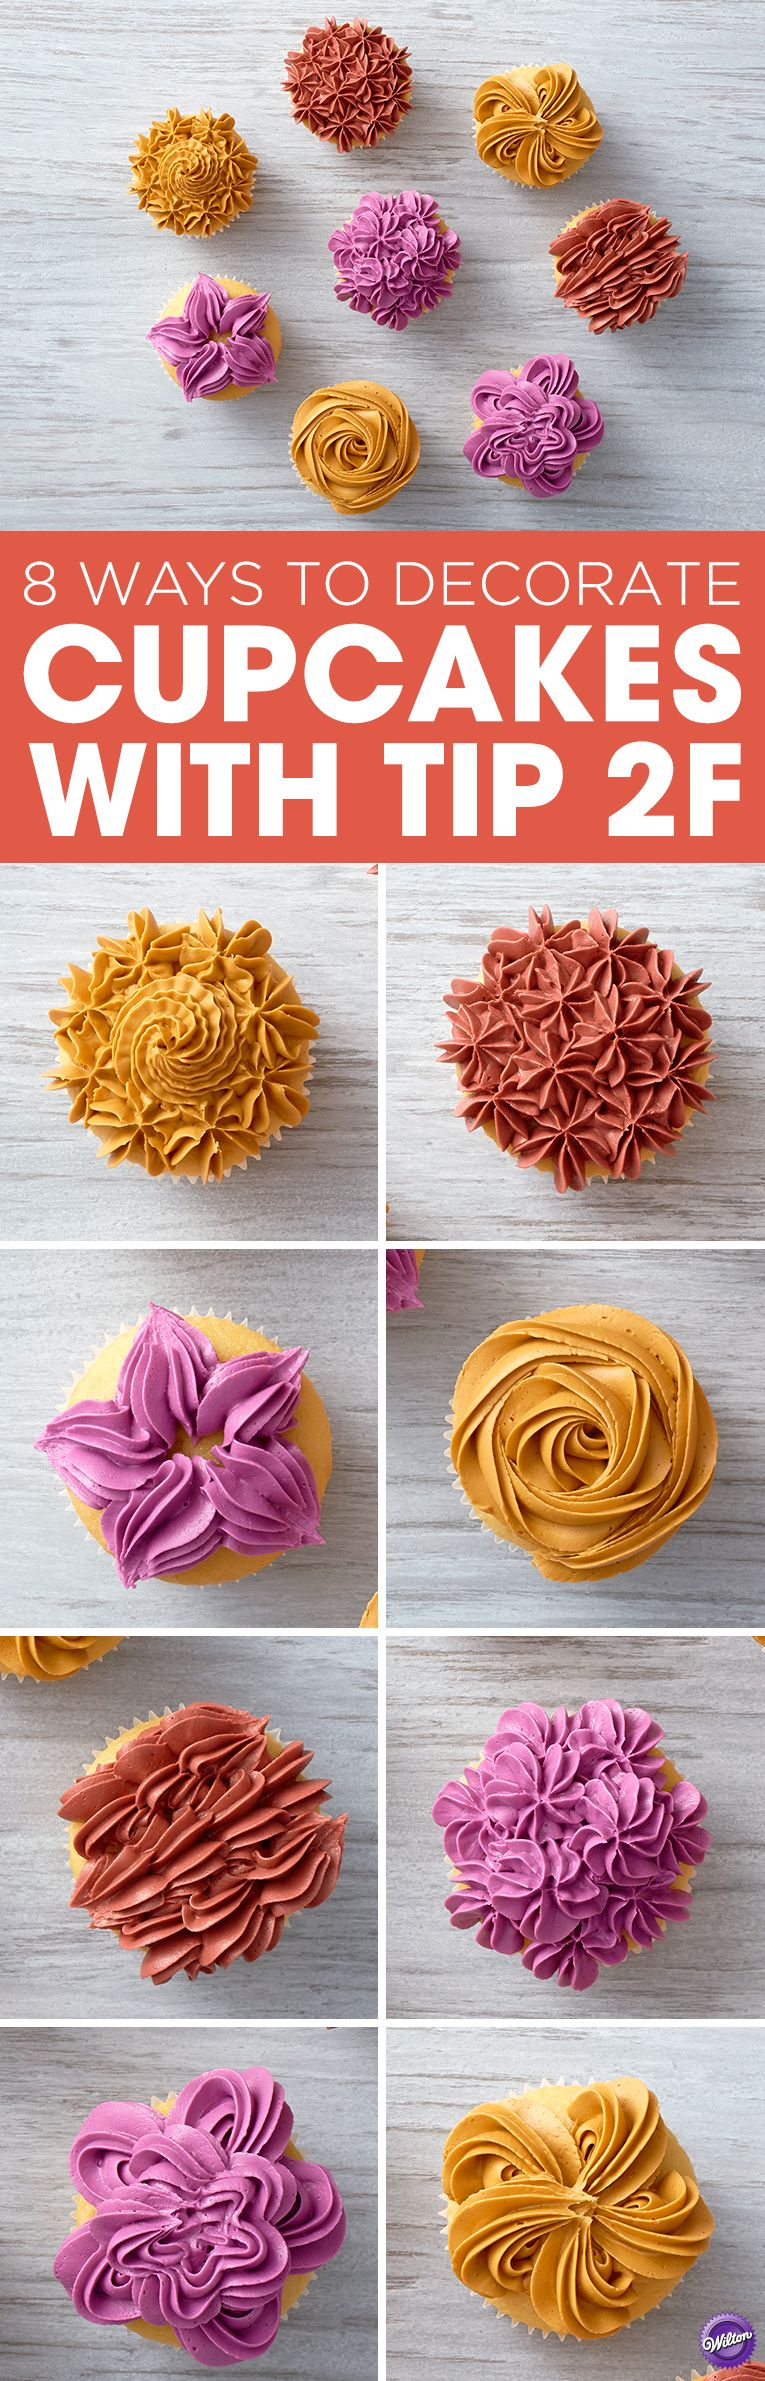 Eight Ways to Decorate with Tip 2F | Cake Hacks & Baking